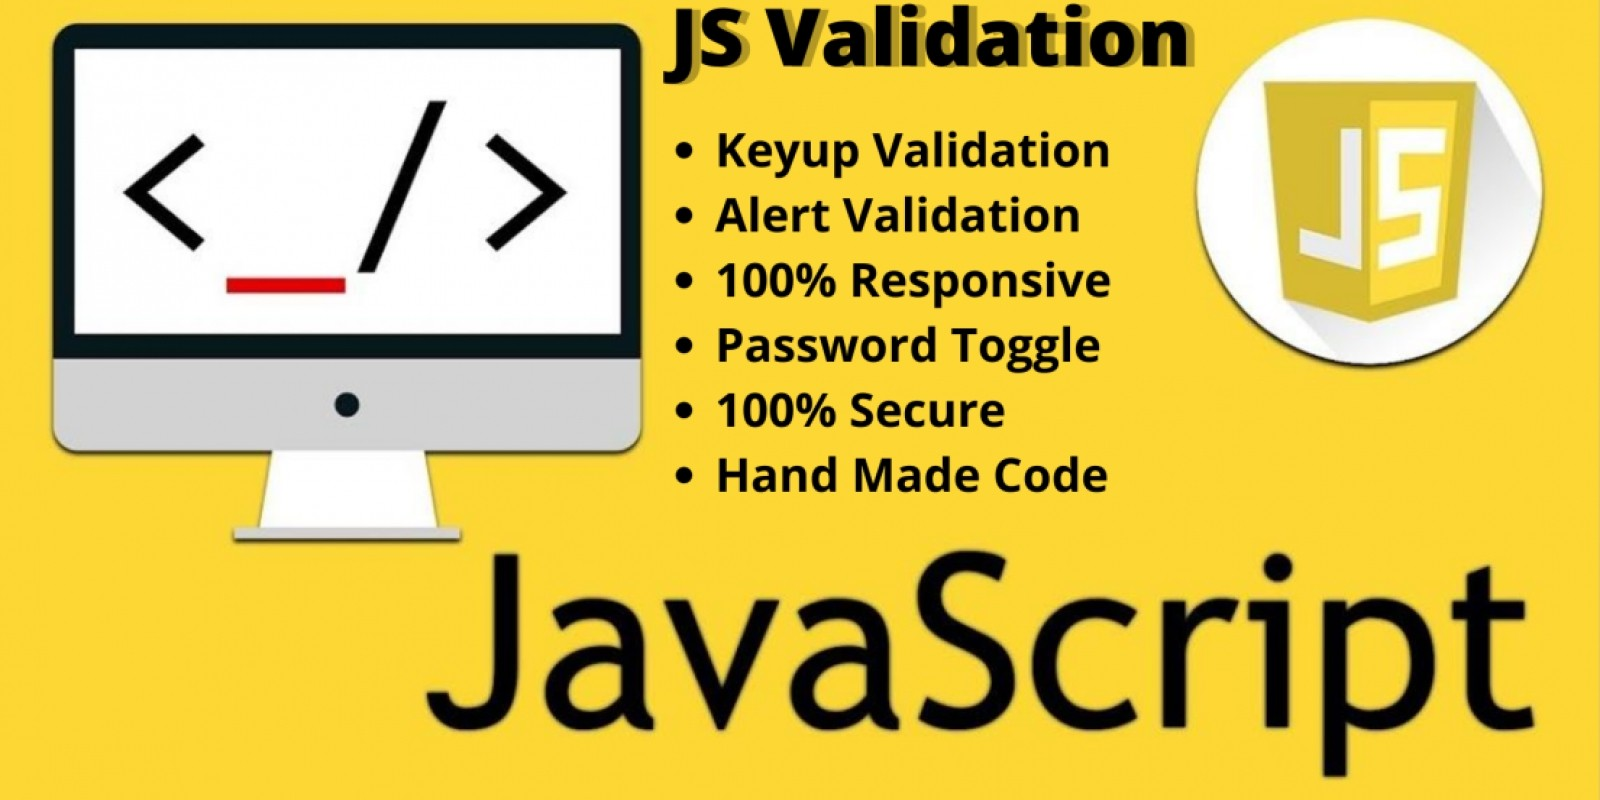 Javascript Keyup With Alert Box Validation Form